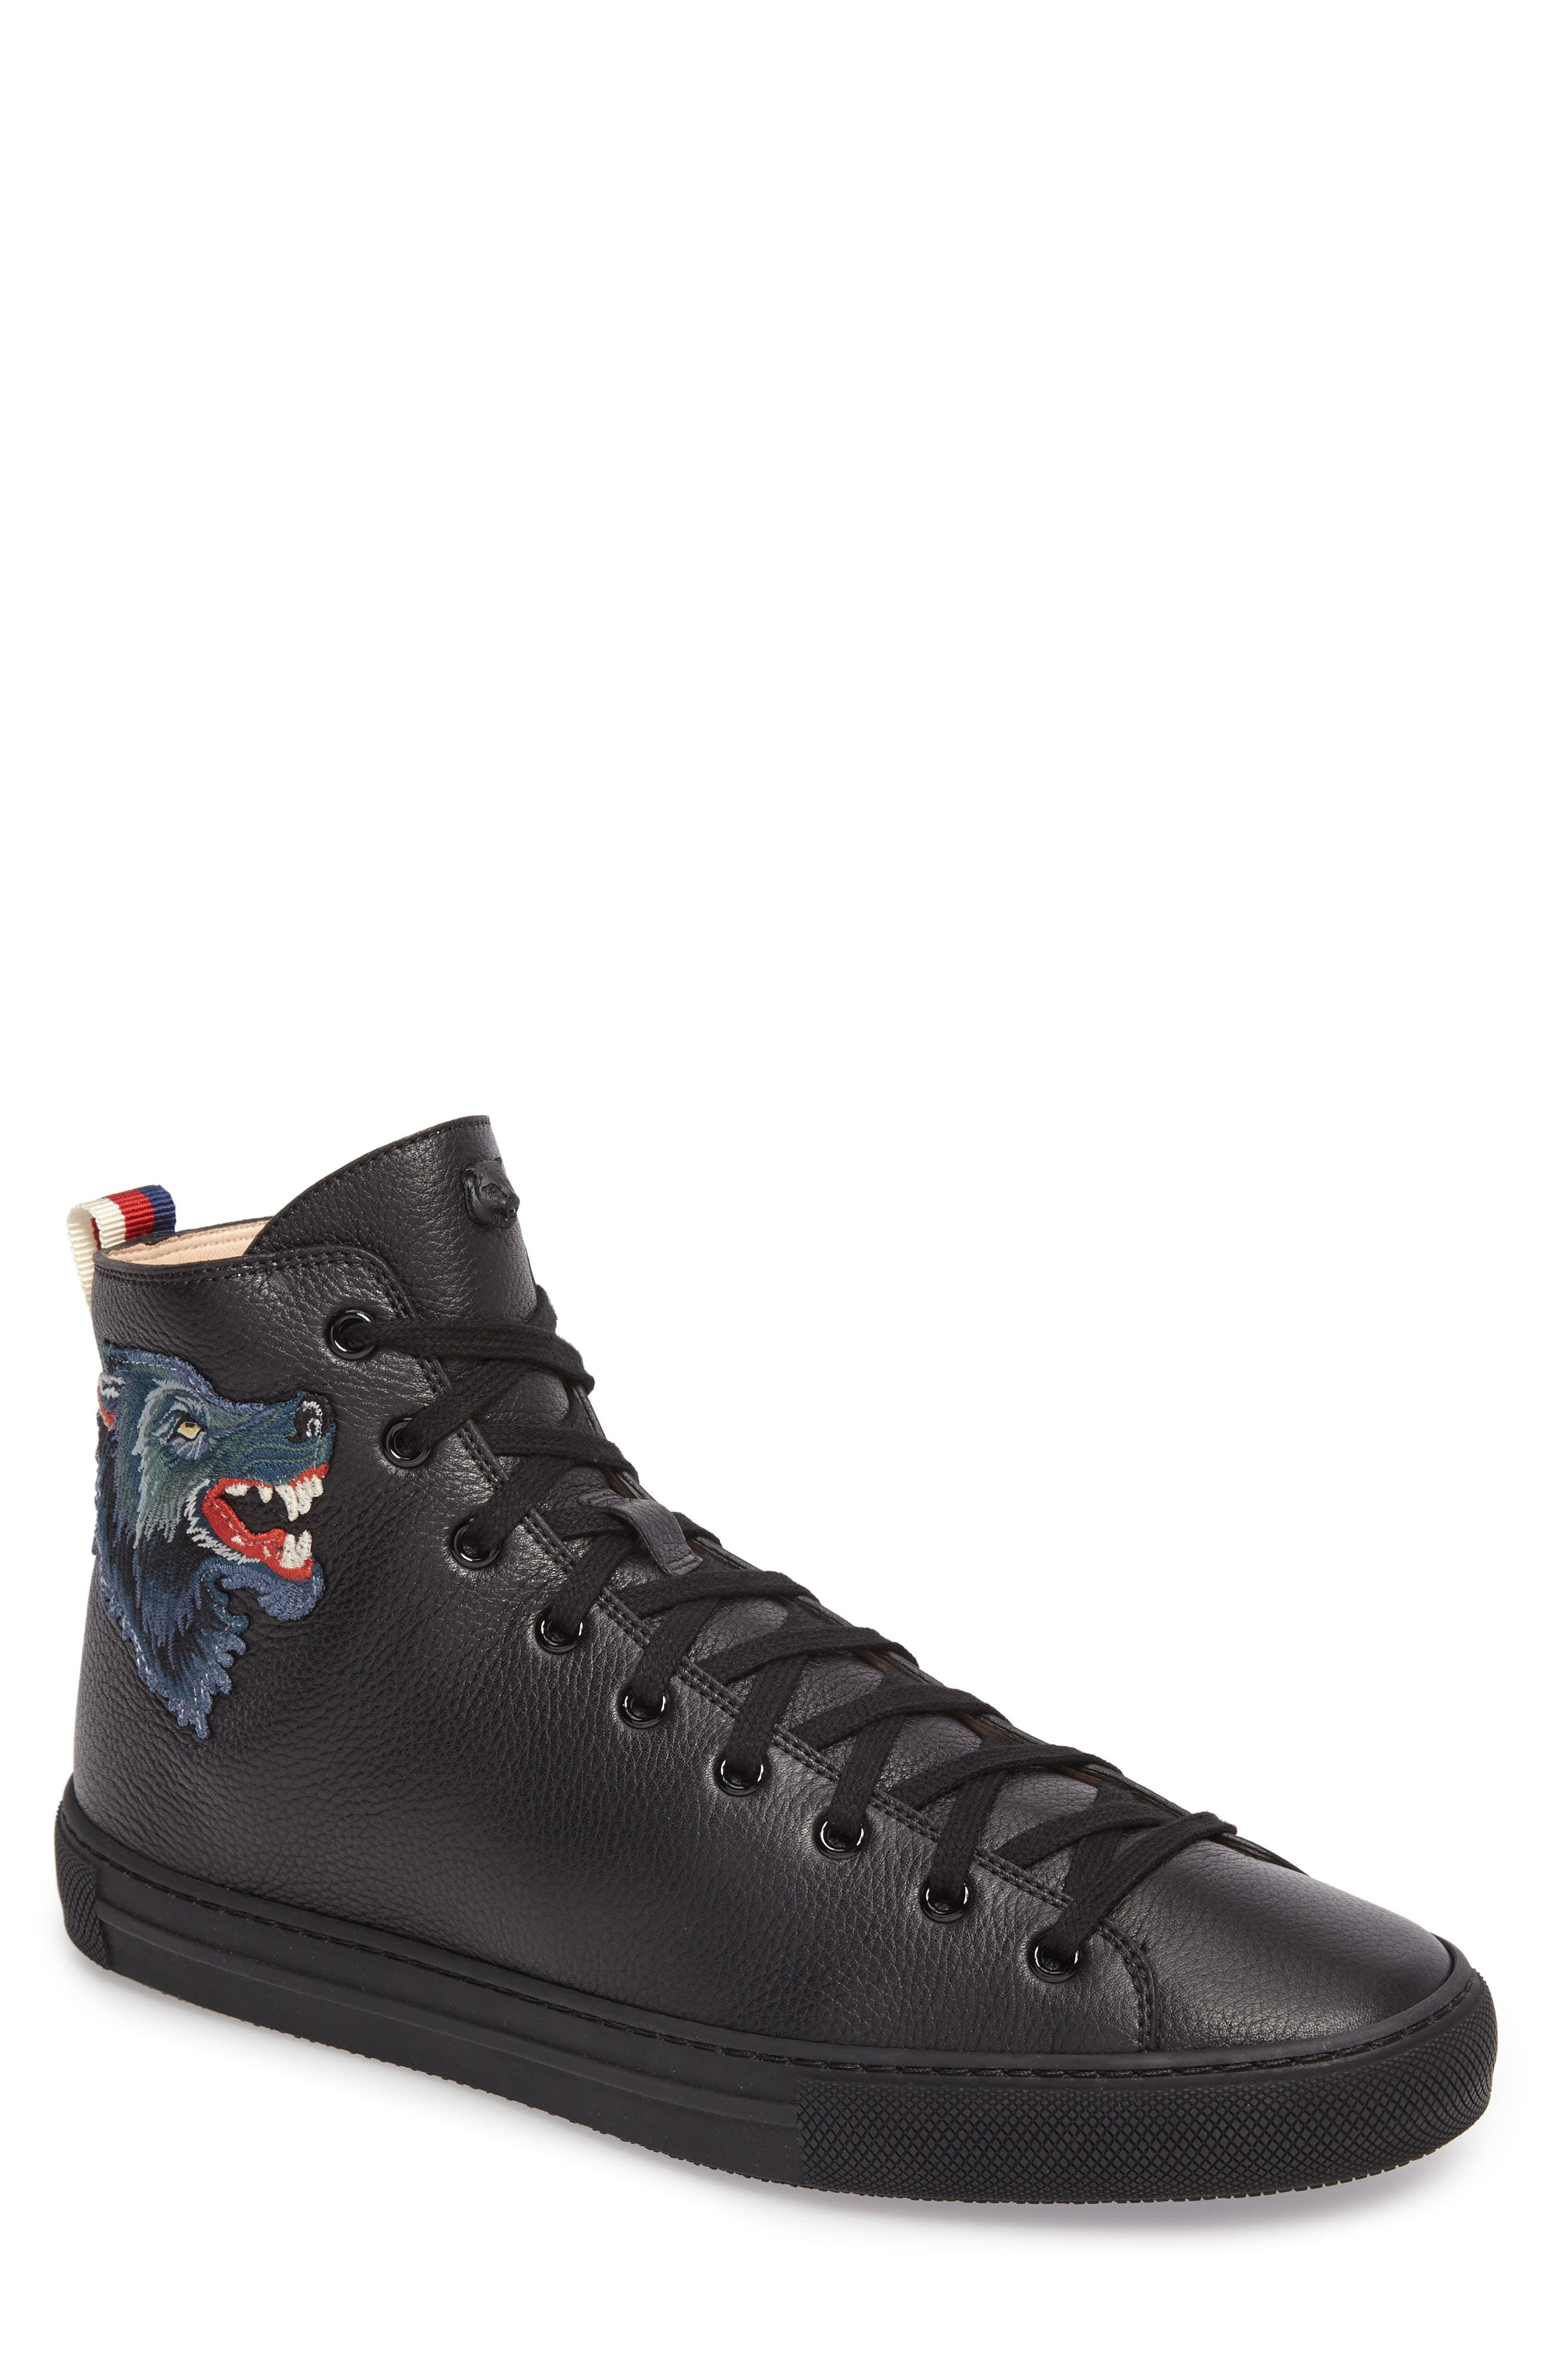 Major Angry Wolf Sneaker,                             Main thumbnail 1, color,                             Black